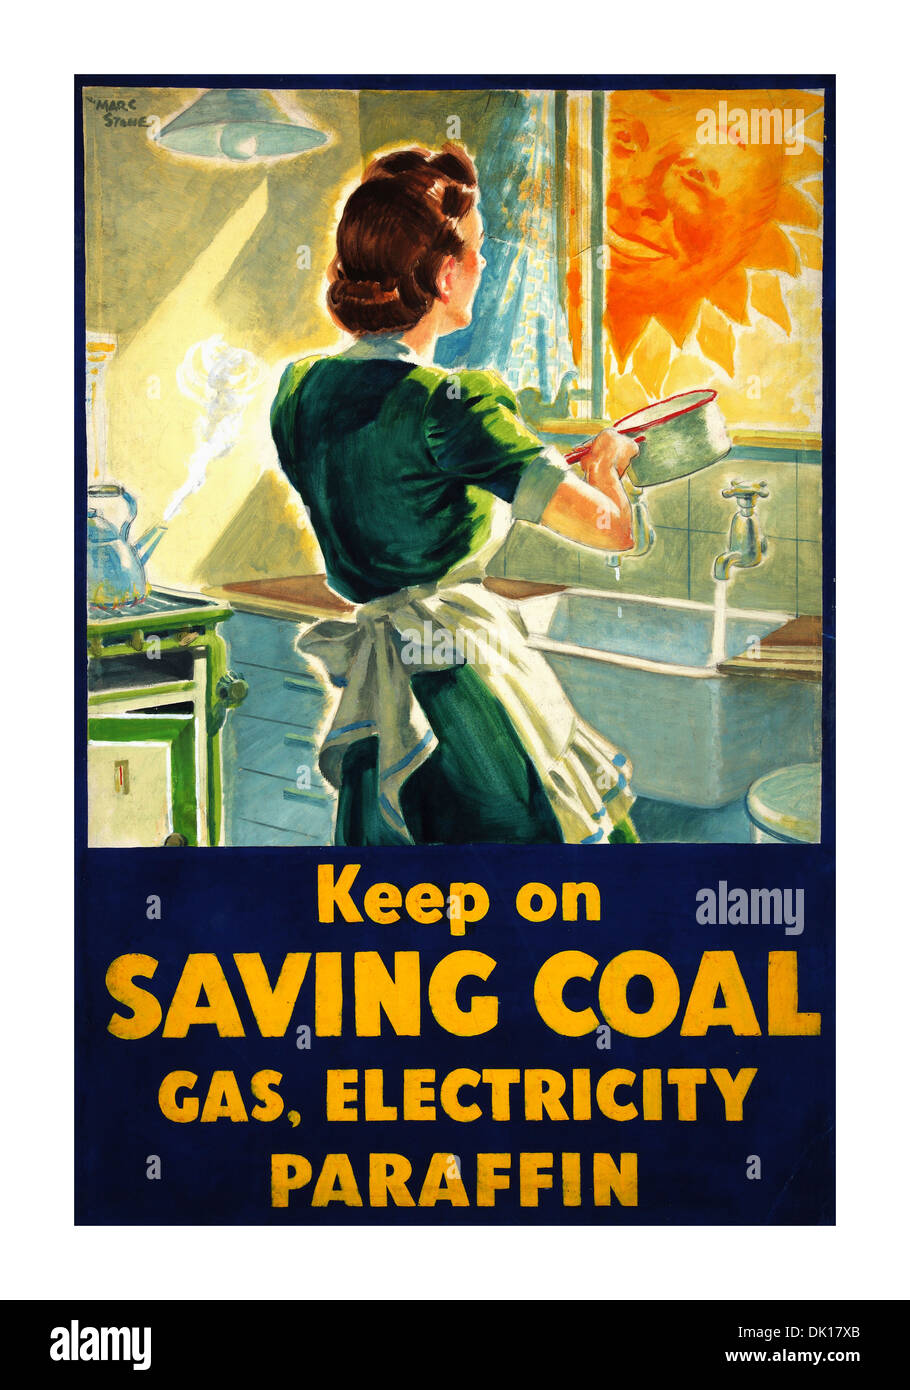 Fuel Economy Keep on saving coal... (housewife at kitchen sink) 1939 WW2 propaganda poster - Stock Image